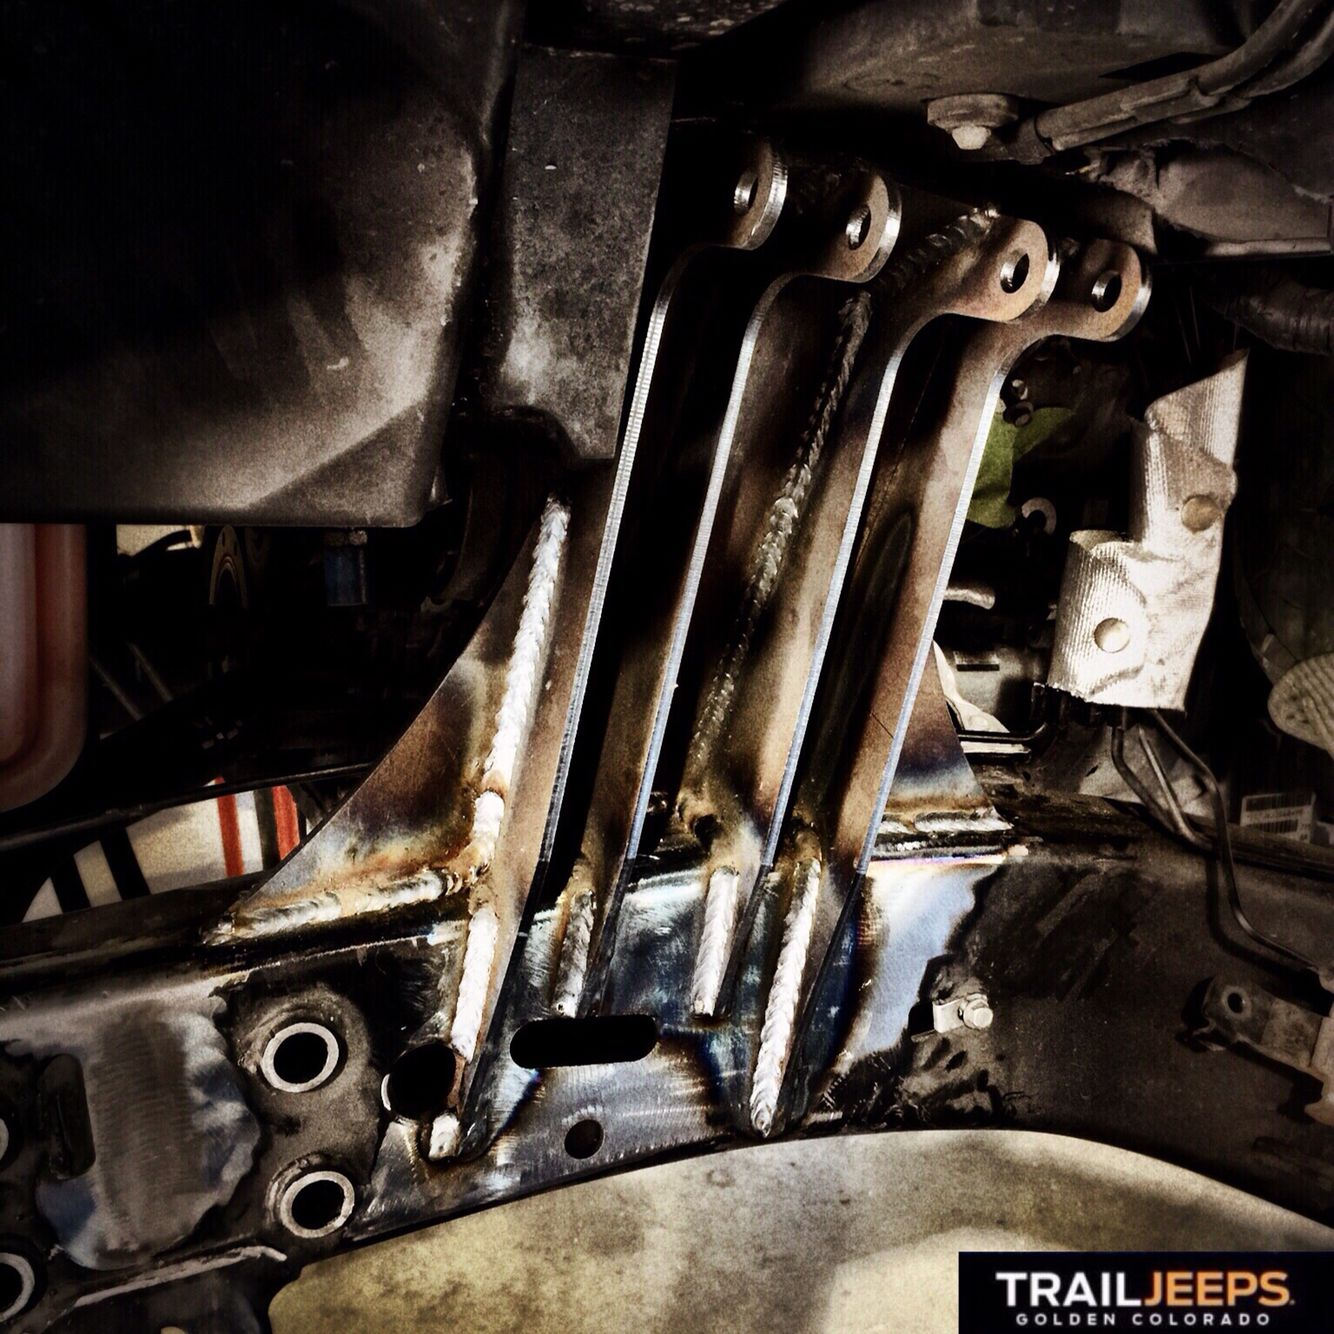 Evo'd factory axle.   Build your Jeep with us. From simple installations to Hemi Conversions. We also sell parts. Call us at 303.495.7595. Competitive pricing.  Or visit us online at www.trailjeeps.com  #trailjeeps #offroad #fourwheeling #4x4 #jkwrangler #rockcrawling #jeep #itsajeepthing #myjeepbuild #builtjeeps